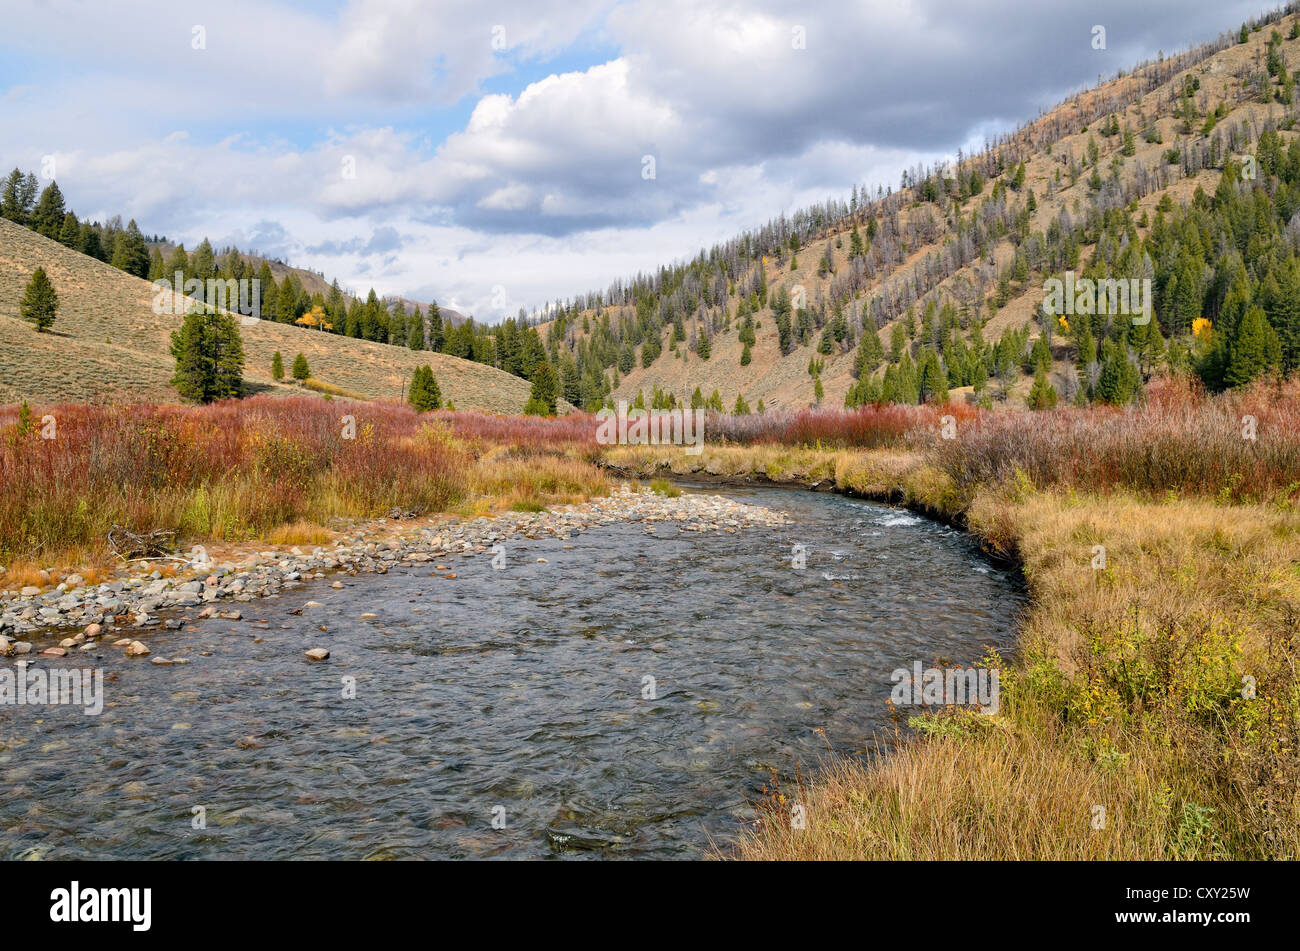 Warm Springs Stock Photos & Warm Springs Stock Images - Alamy